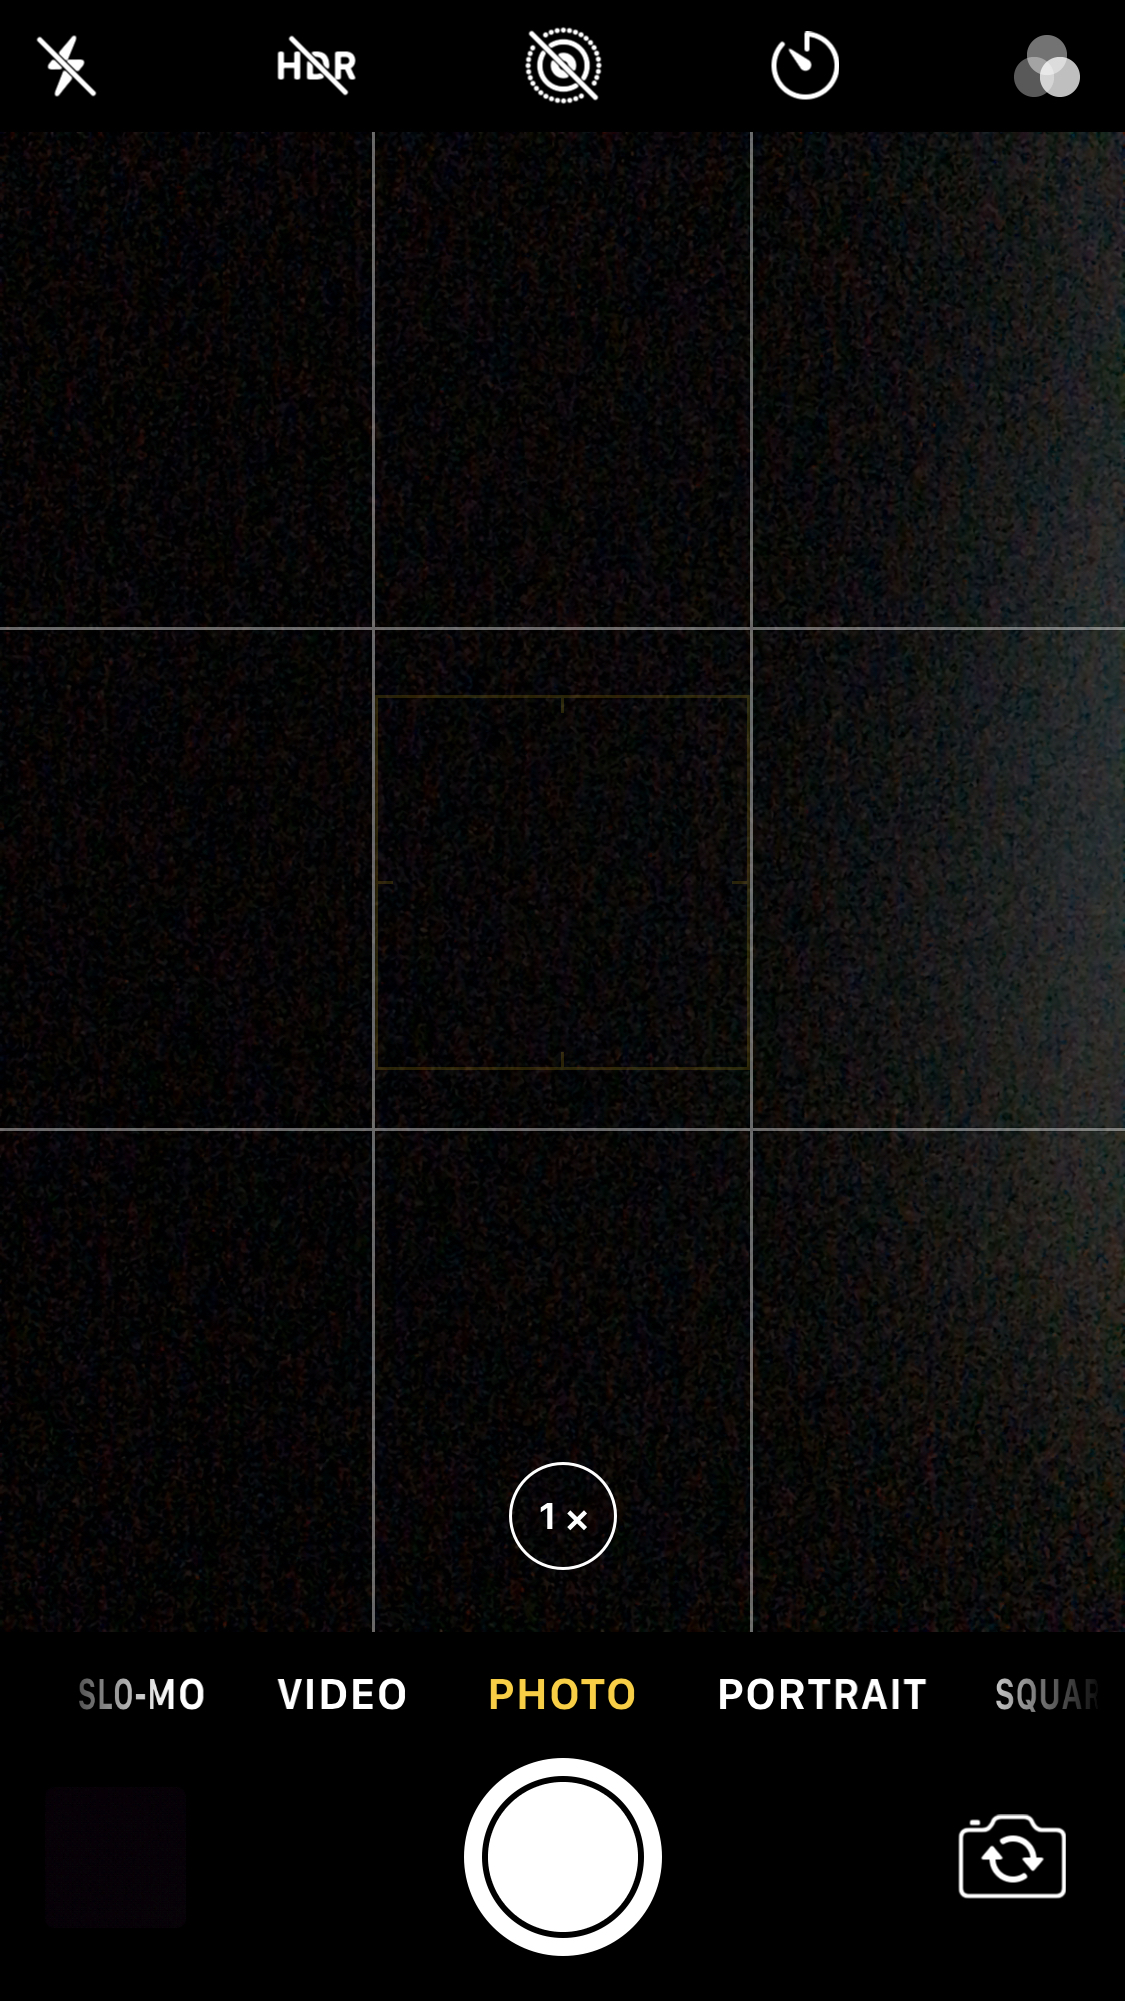 This is the grid setting for an iPhone - When turned on, it will show up in front of whatever you want to take a picture of.